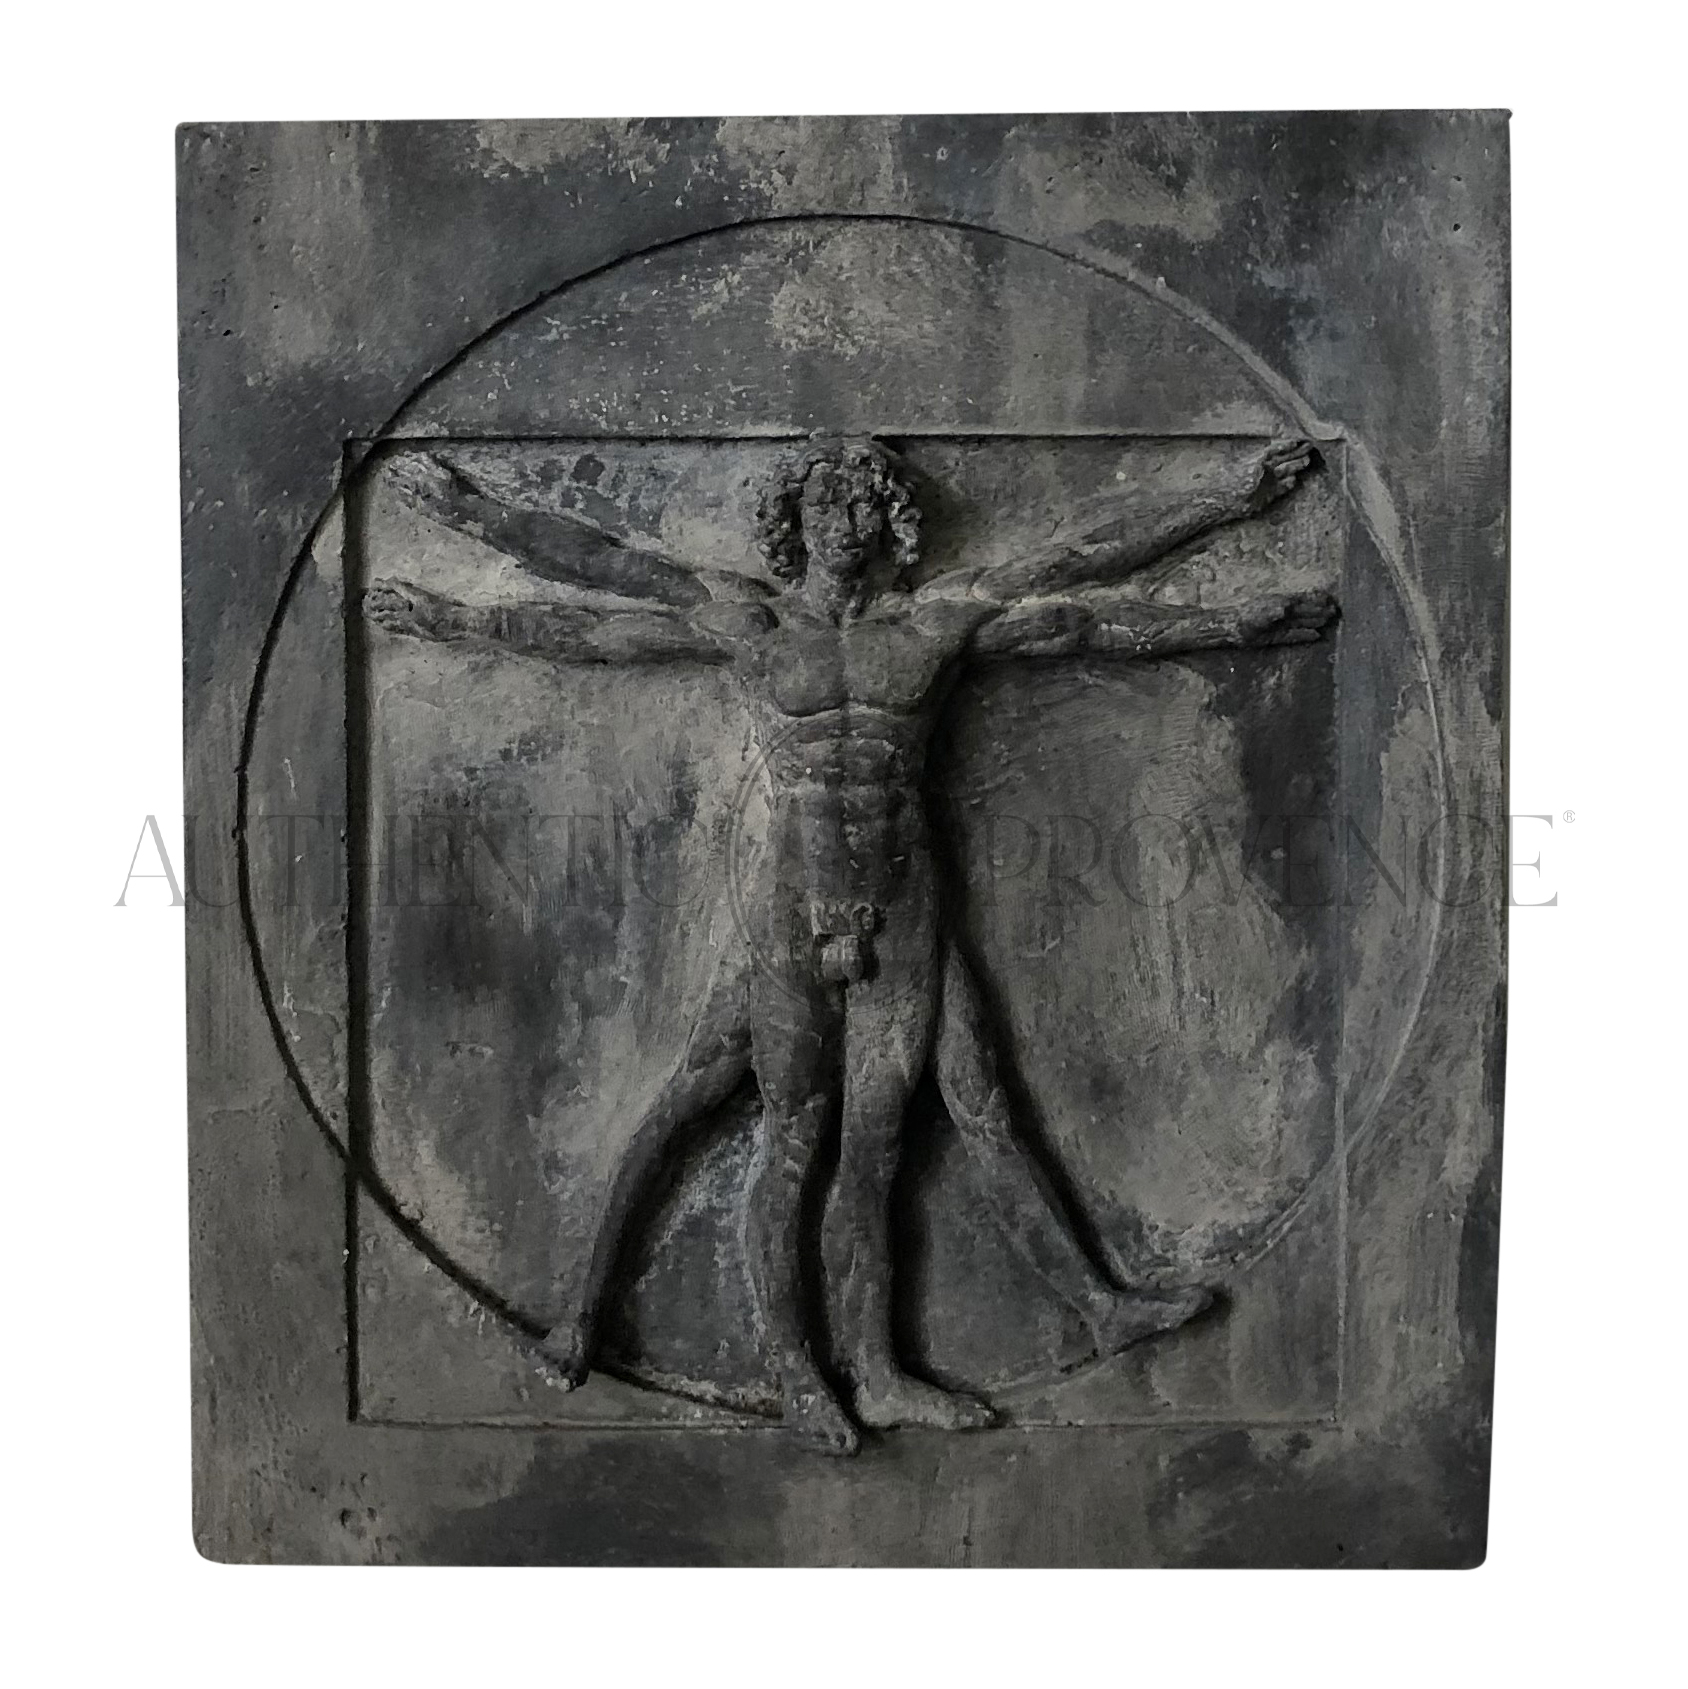 Vitruvion Man Wall Plaque